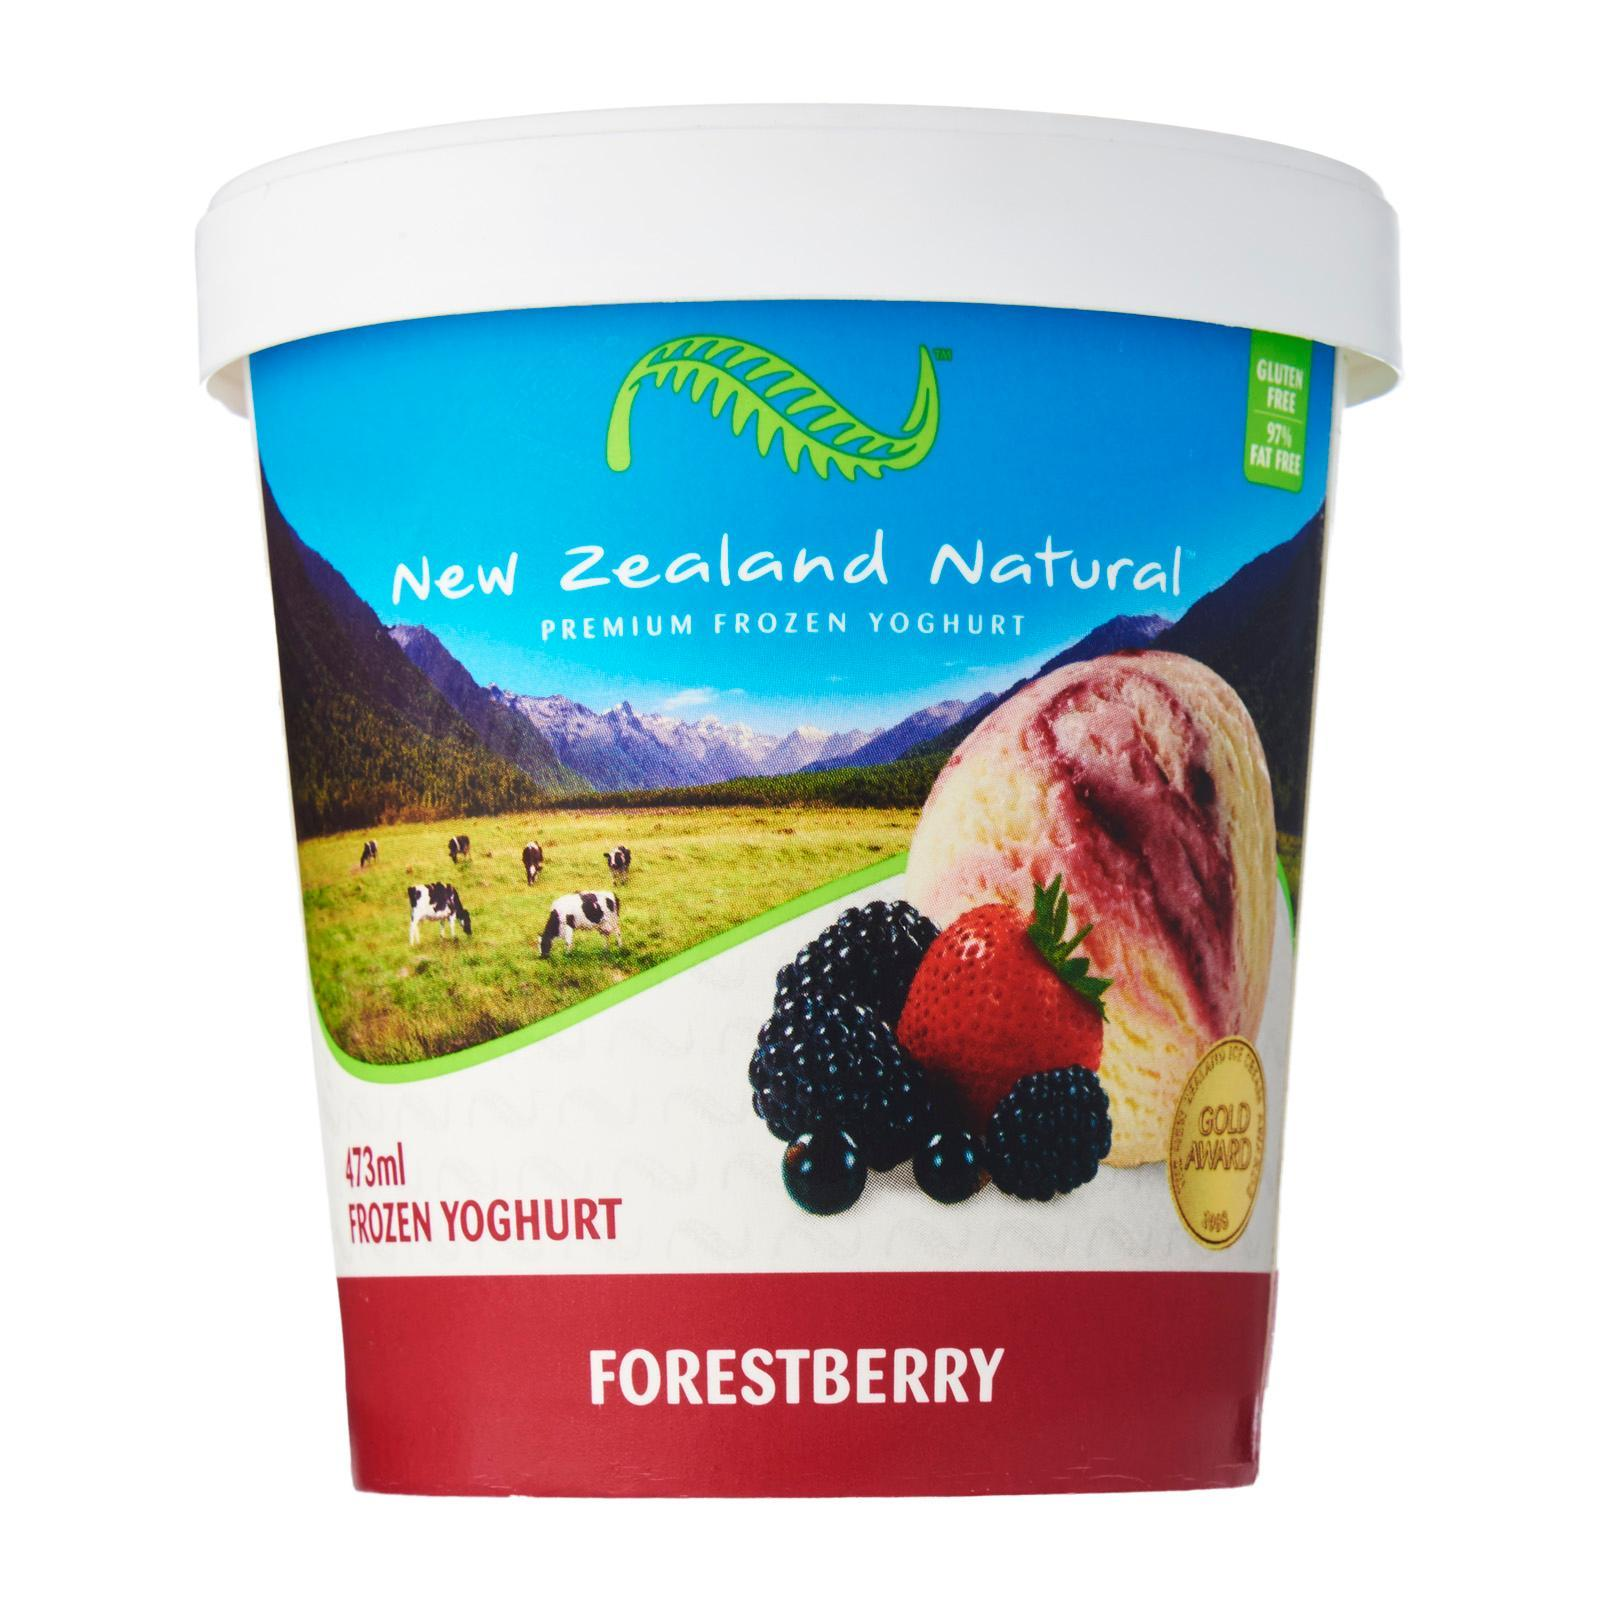 New Zealand Natural Ice Cream - Forestberry Yoghurt By Redmart.